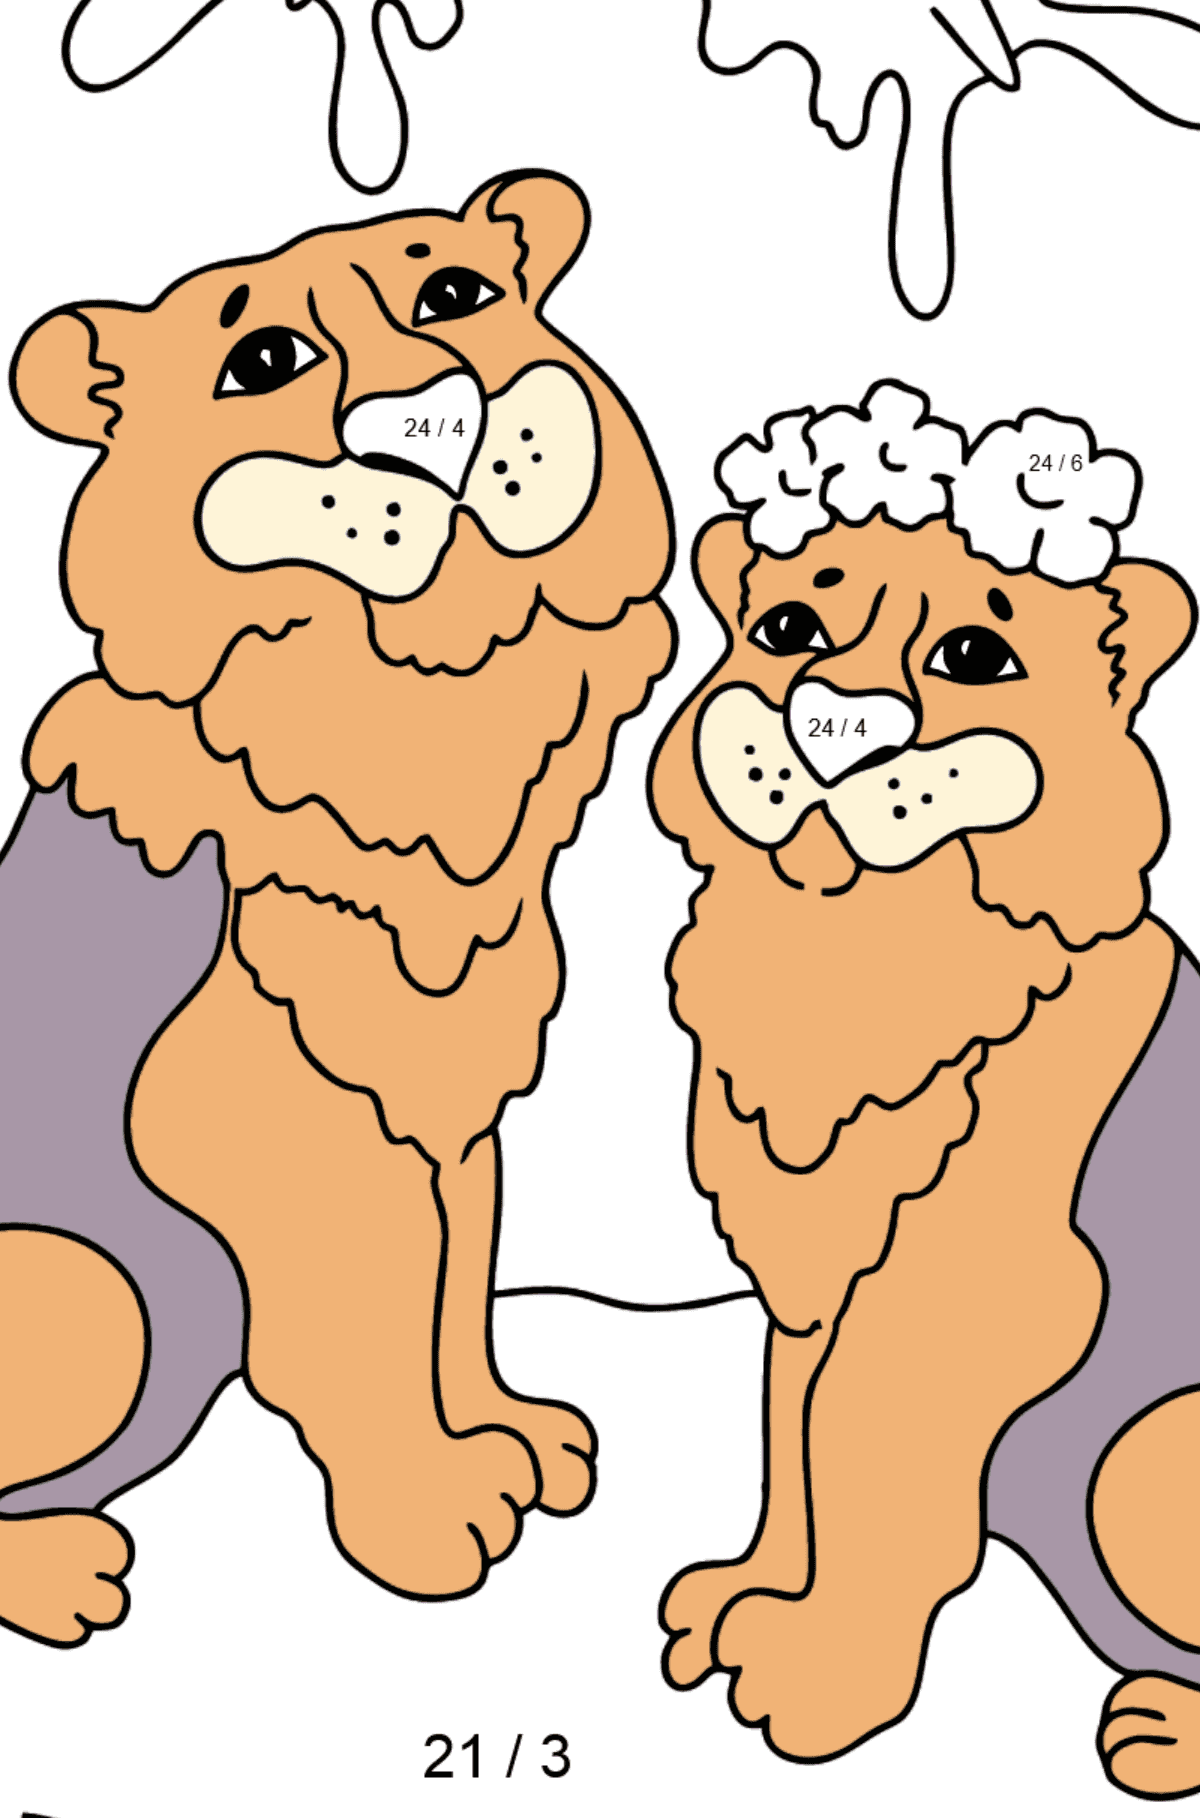 Coloring Page - A Tiger with a Tigress - Math Coloring - Division for Kids